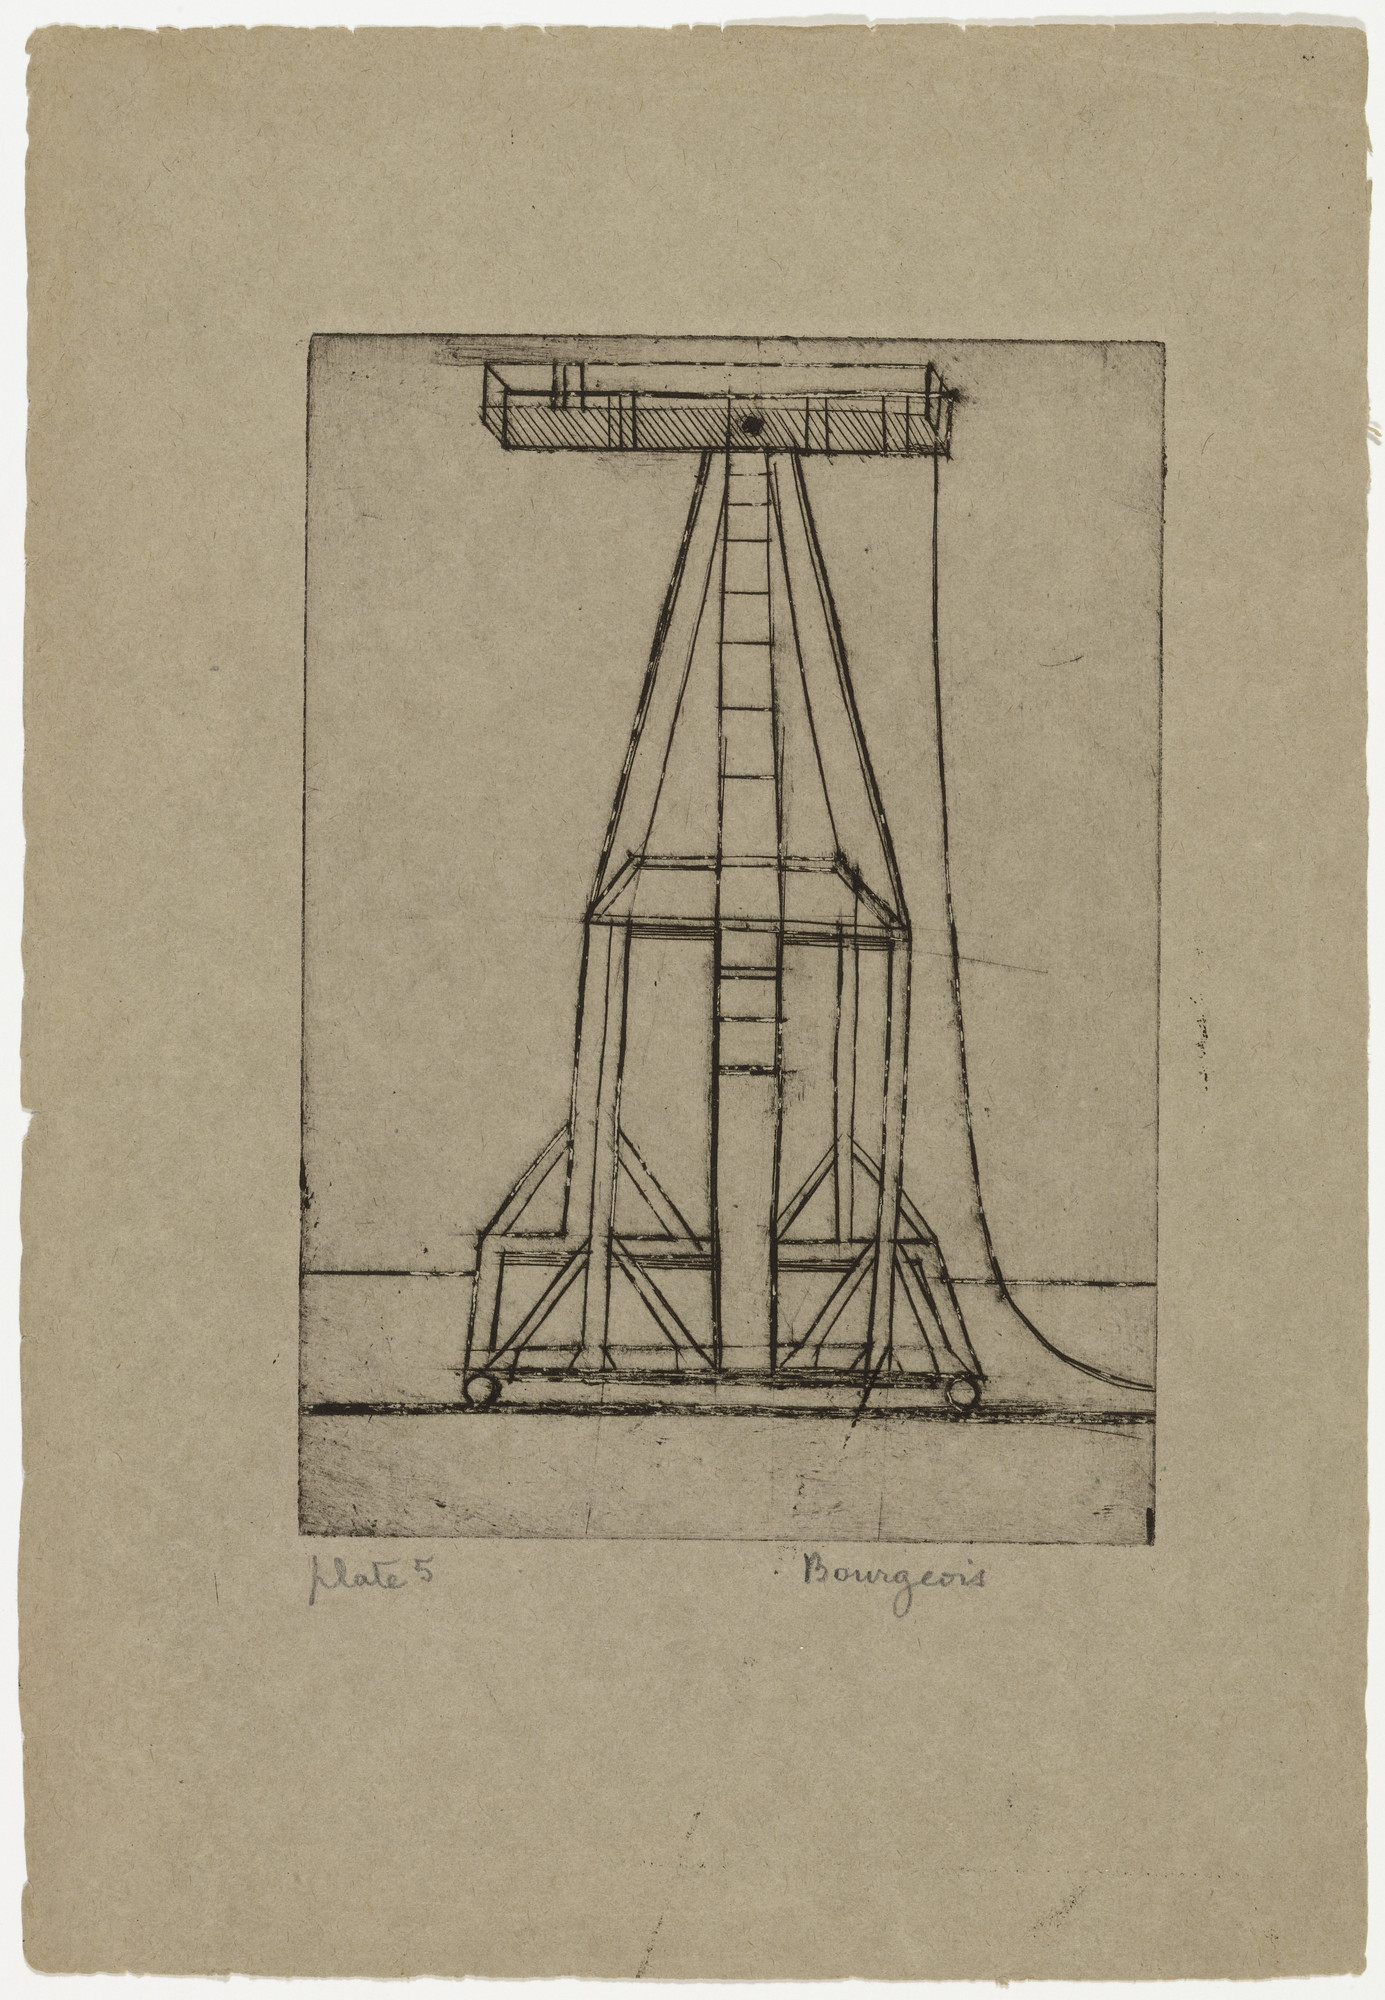 Louise Bourgeois. Plate 5 of 9, from the illustrated book, He Disappeared into Complete Silence. 1946-1947